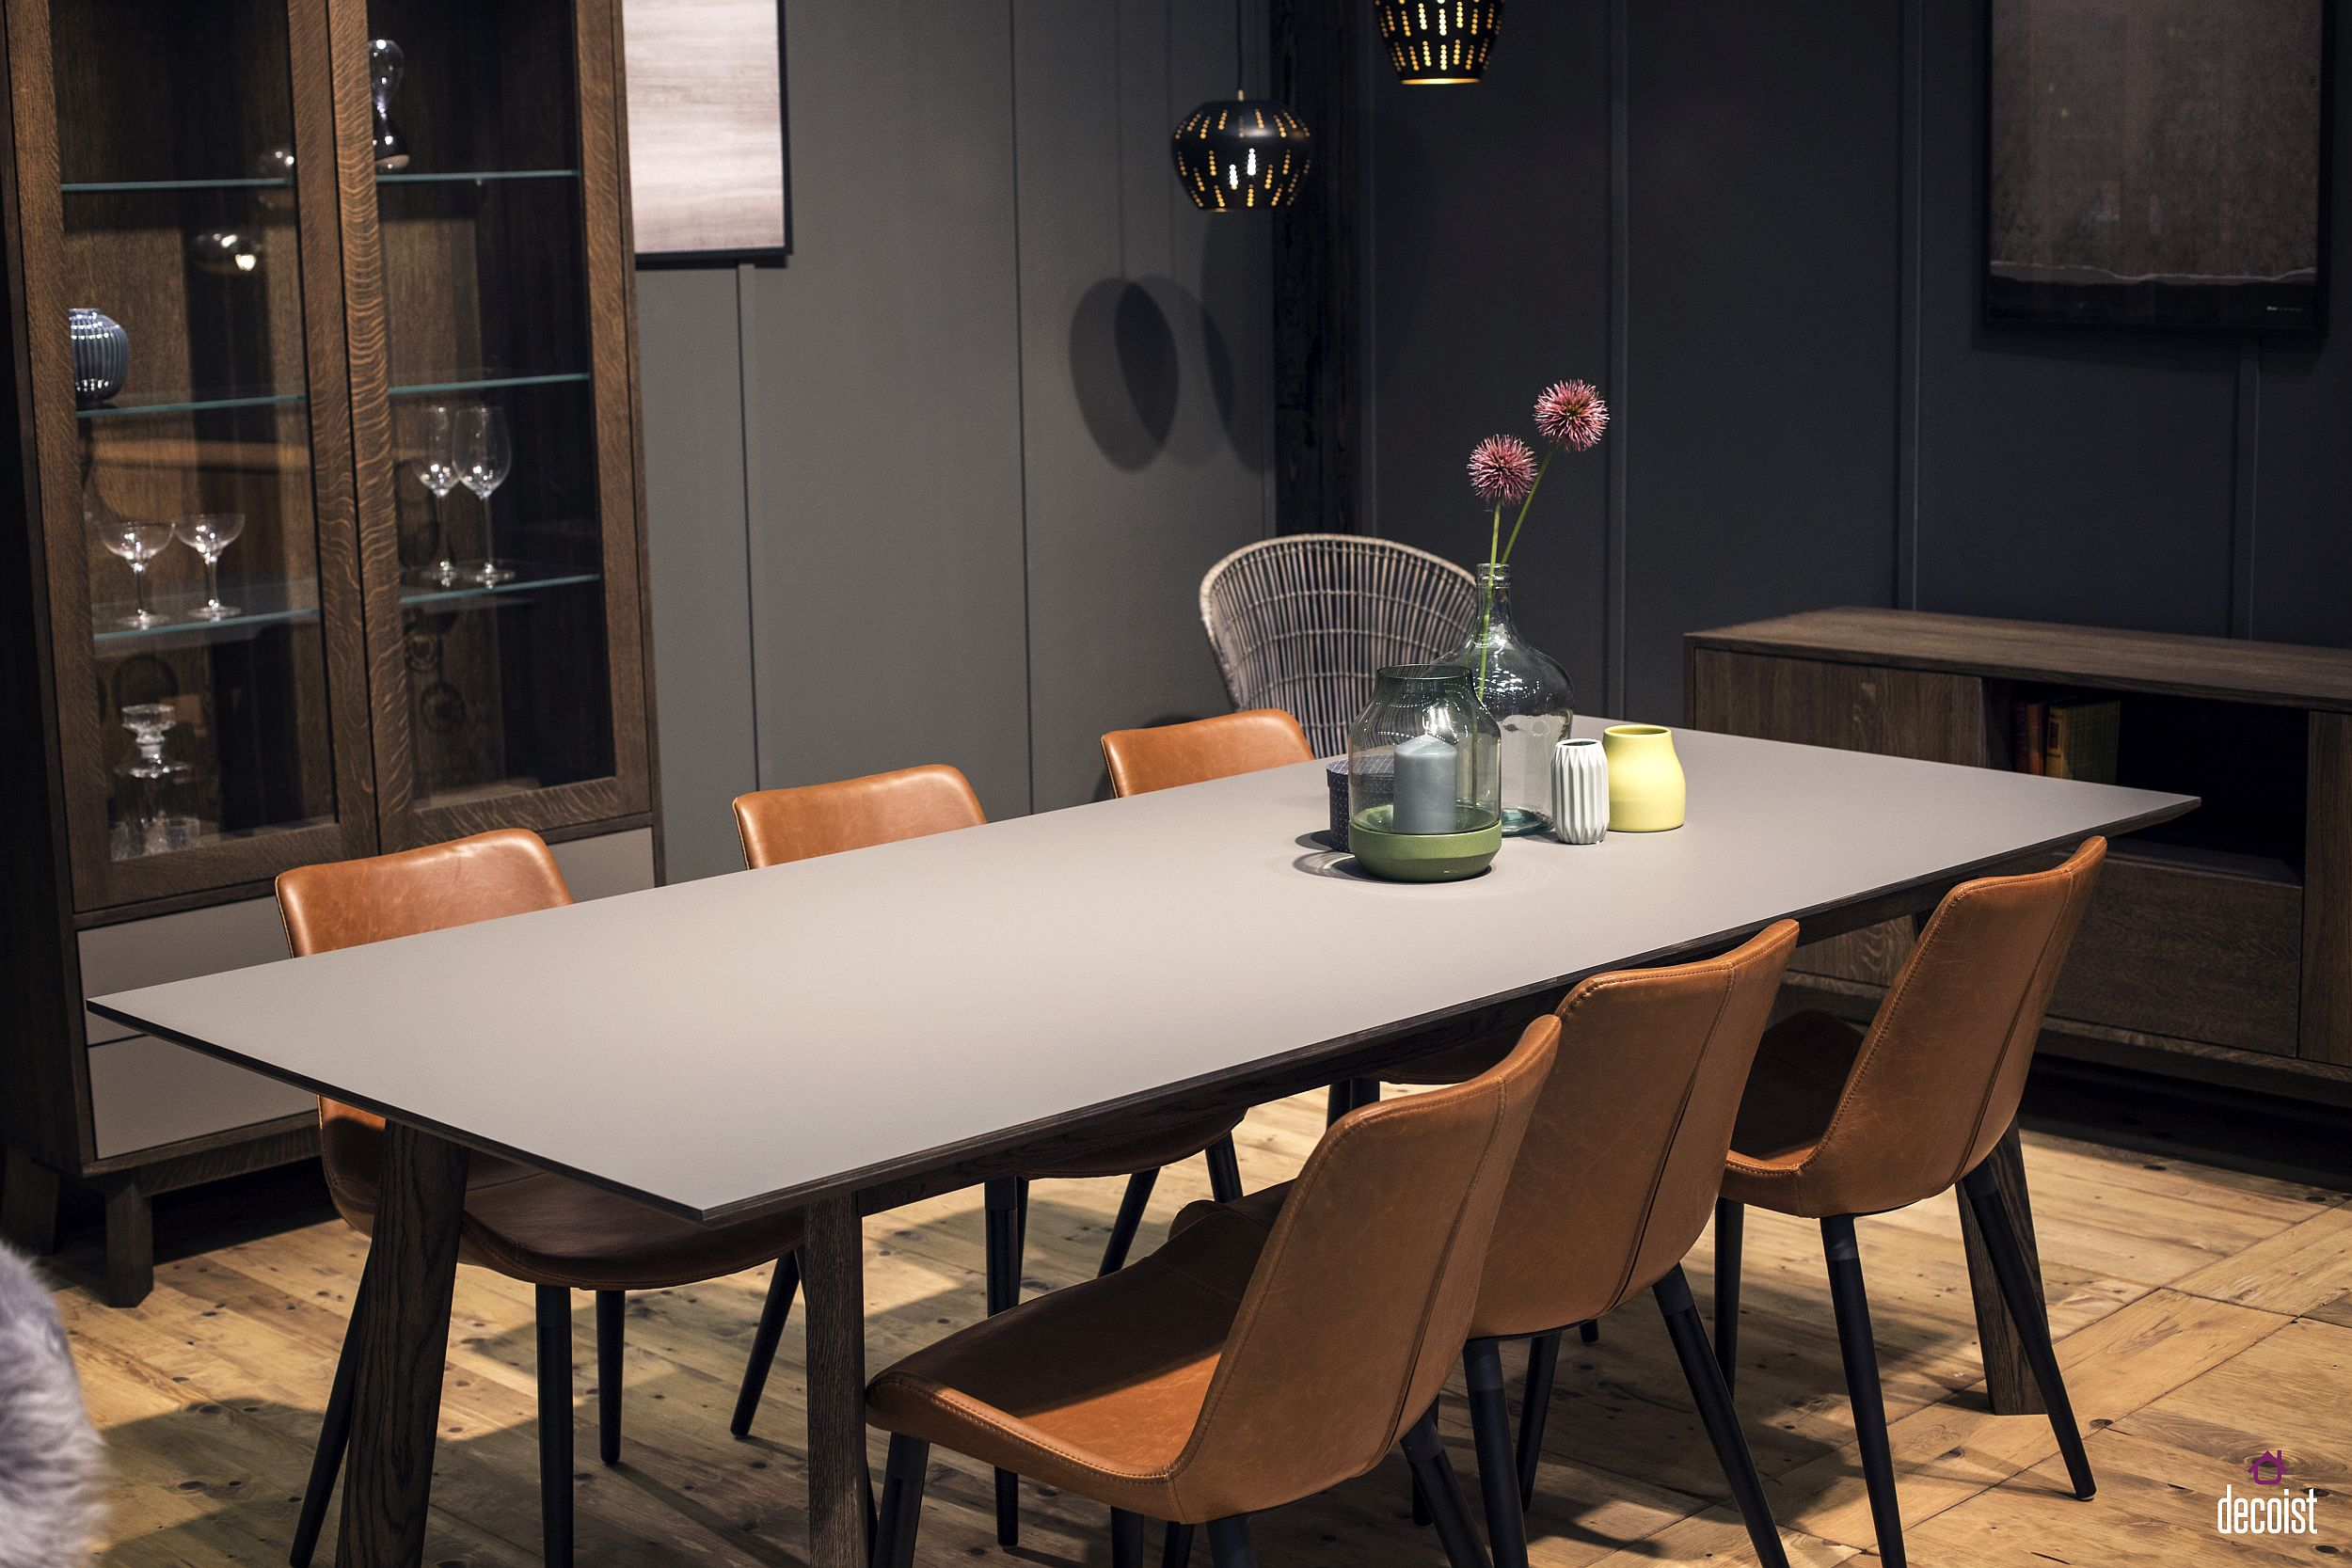 Brown leather chairs and a gray backdrop give the dining room a sophisticated, masculine look